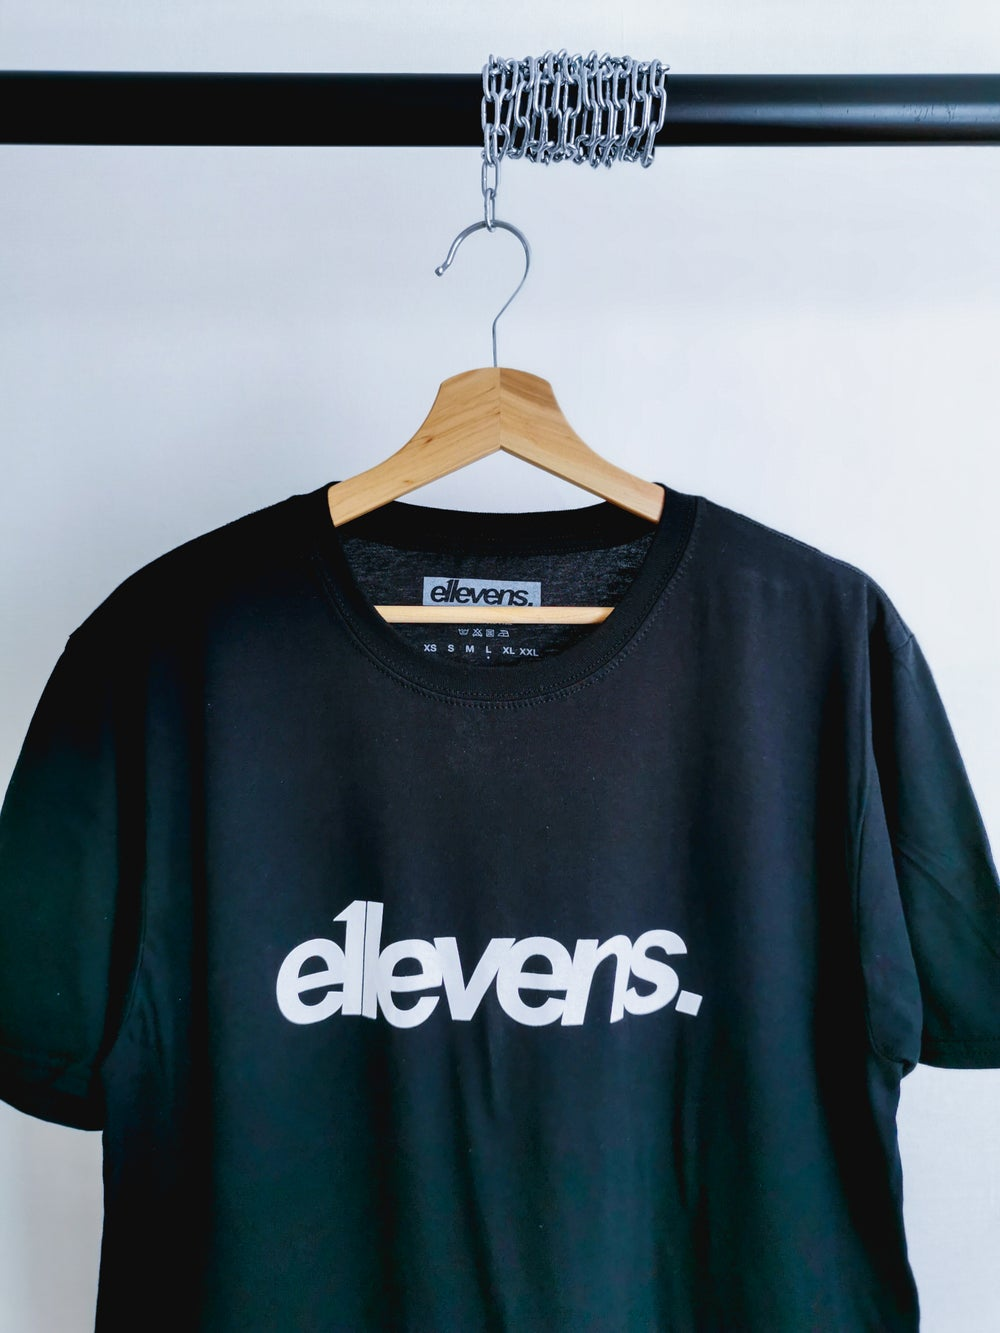 Image of E11evens Classic design - Black tee